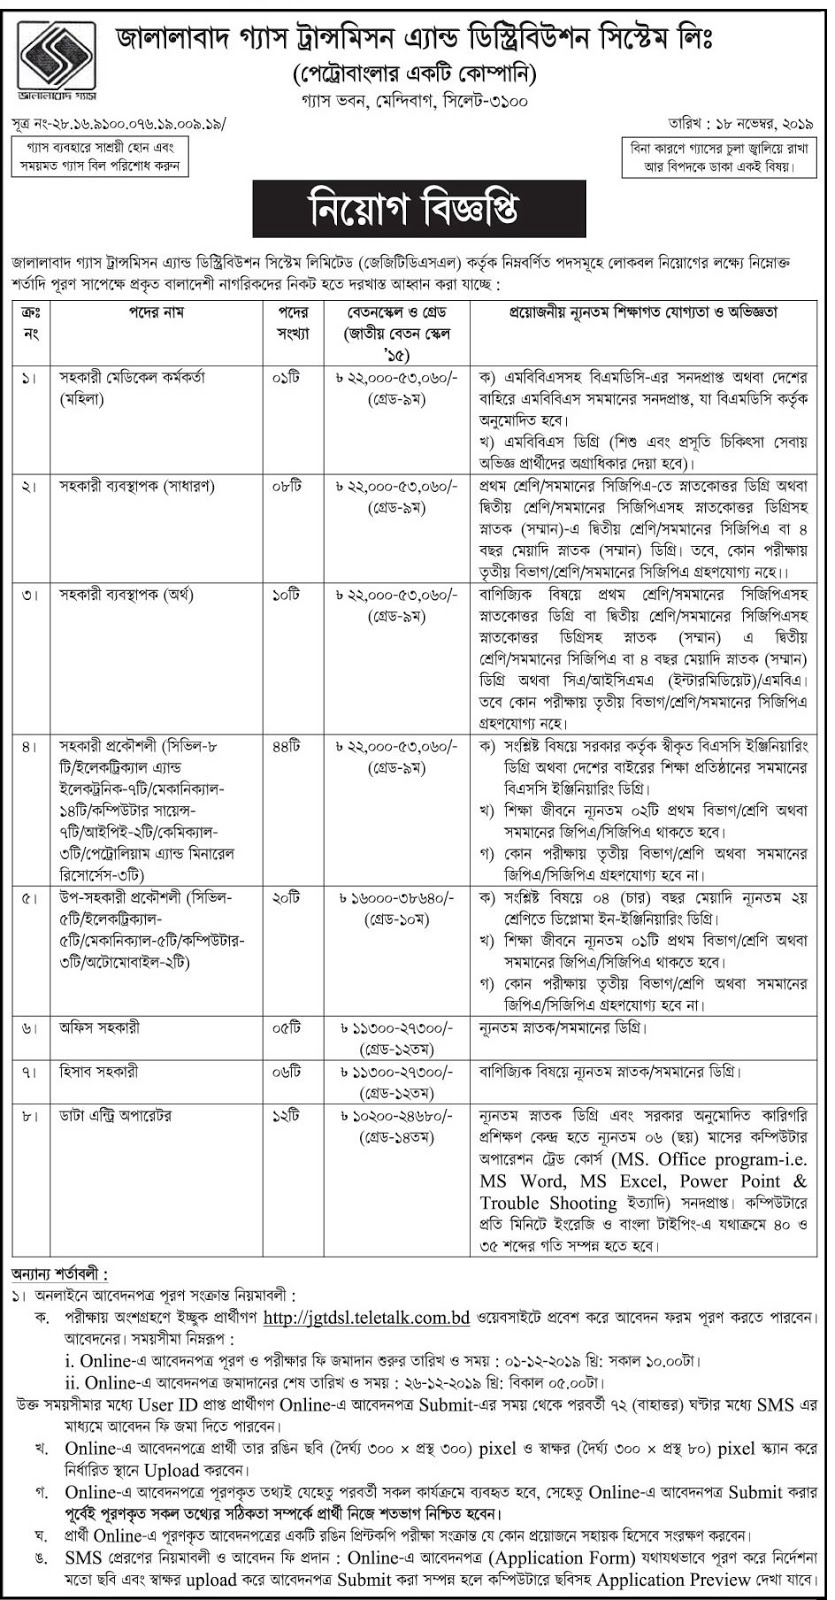 Jalalabad Gas Transmission and Distribution System Limited Job Circular 2019